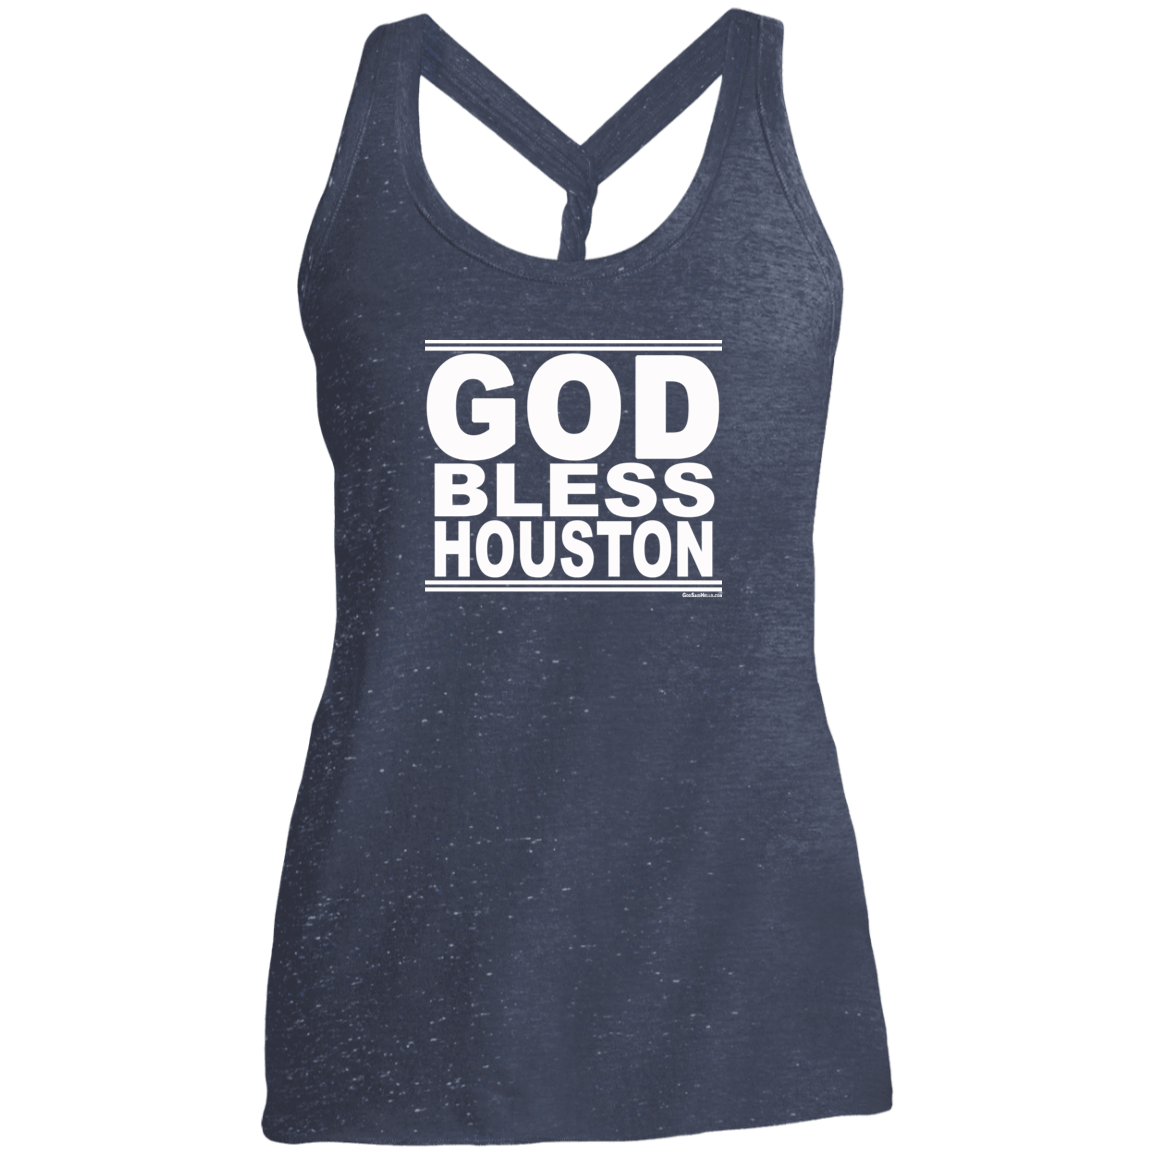 #GodBlessHouston - Women's Twist Back Tank Top